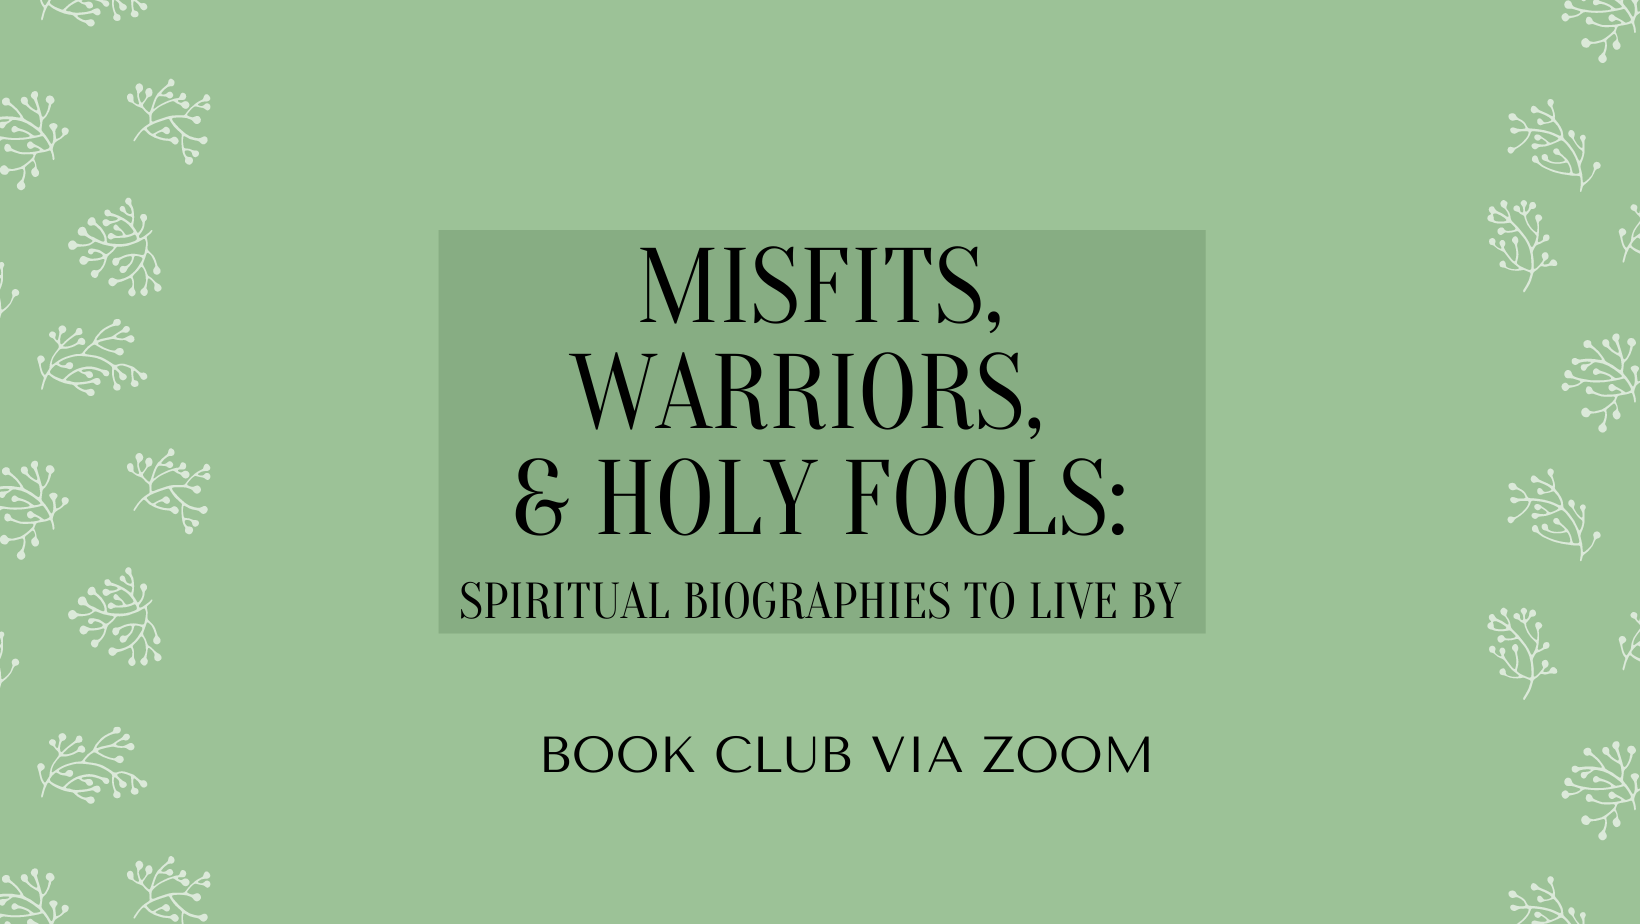 Misfits, Warriors, and Holy Fools: Spiritual Biographies to Live By image